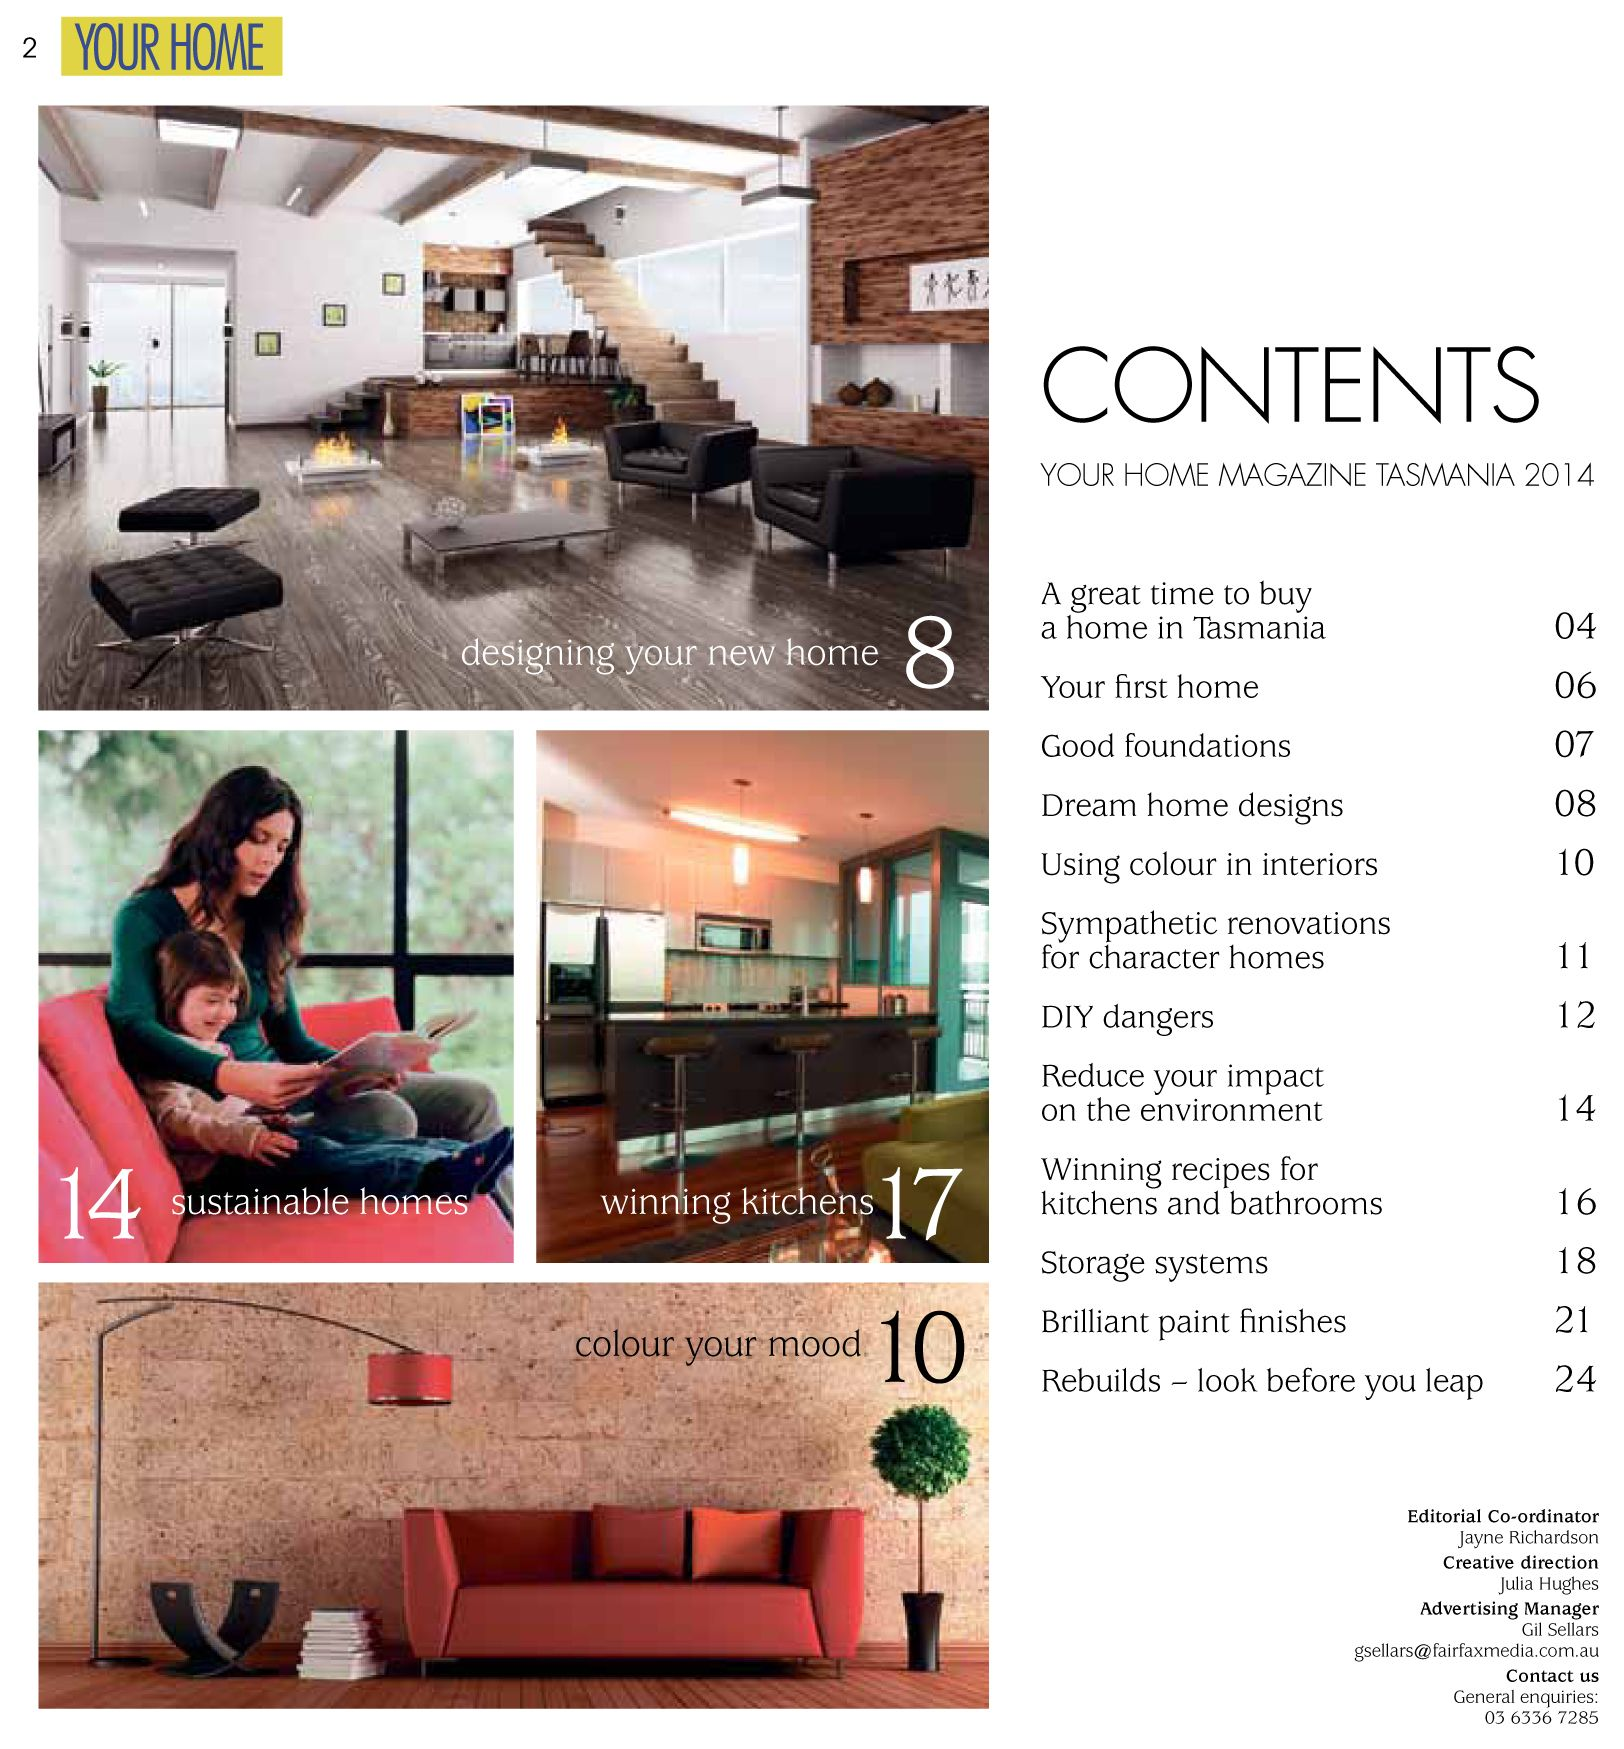 Home Magazine: Contents Page Design For Your Home Magazine Design And